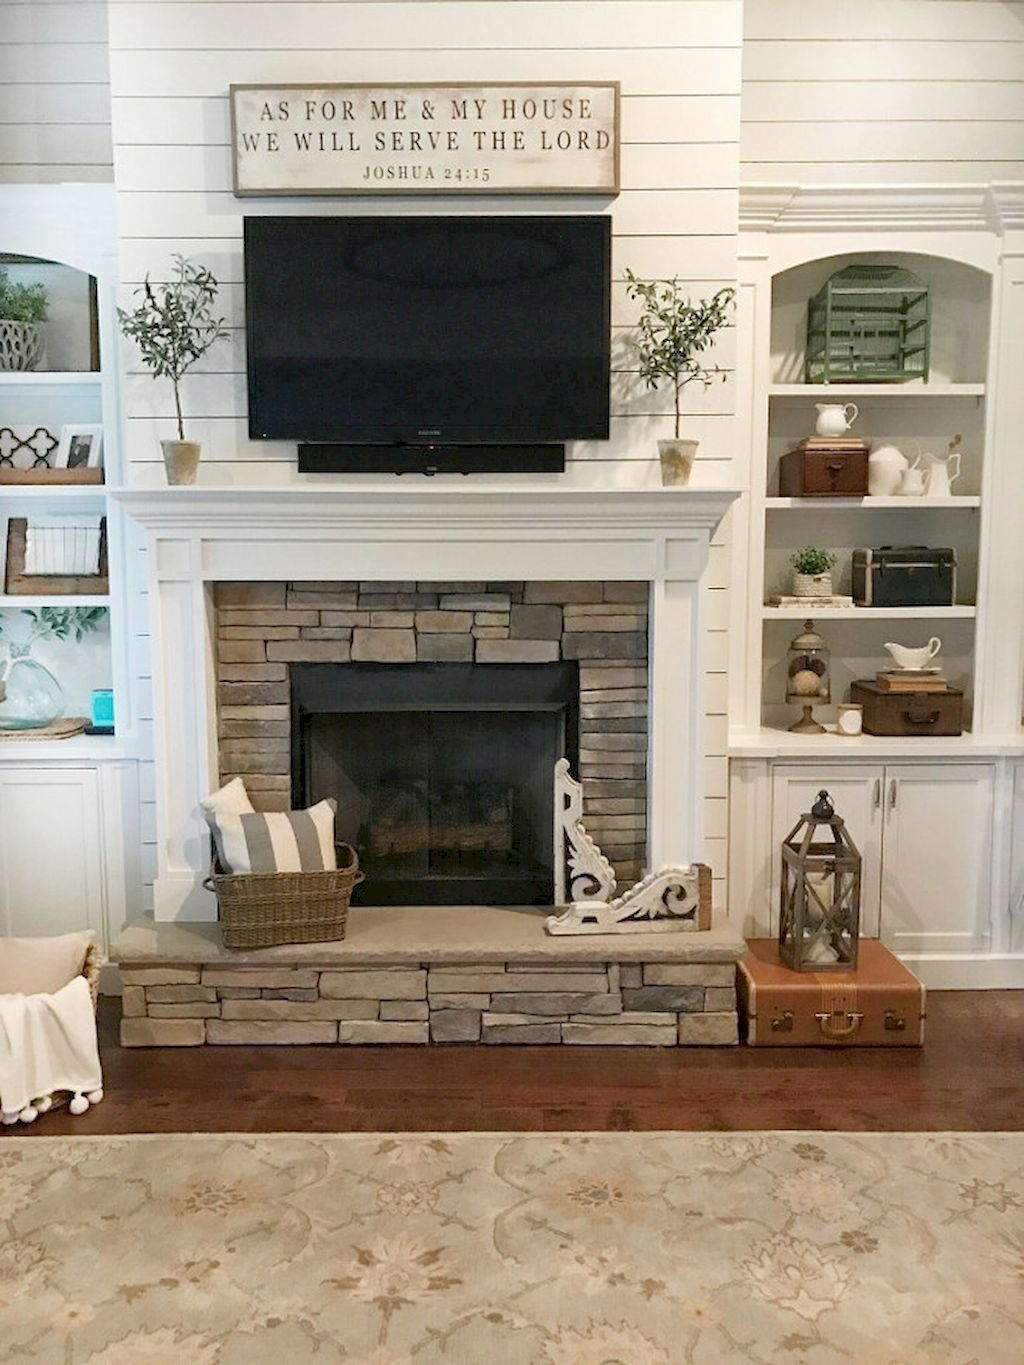 Farmhouse Fireplace Living Room Designs on home living room designs, family living room designs, apartment living room designs, farmhouse room colors, brownstone living room designs, country living room designs, lodge living room designs, contemporary living room designs, log living room designs, great living room designs, vintage living room designs, rustic living room designs, mediterranean living room designs, craftsman living room designs, southwestern living room designs, southern living room designs, kitchen living room designs, castle living room designs, garage living room designs, english living room designs,